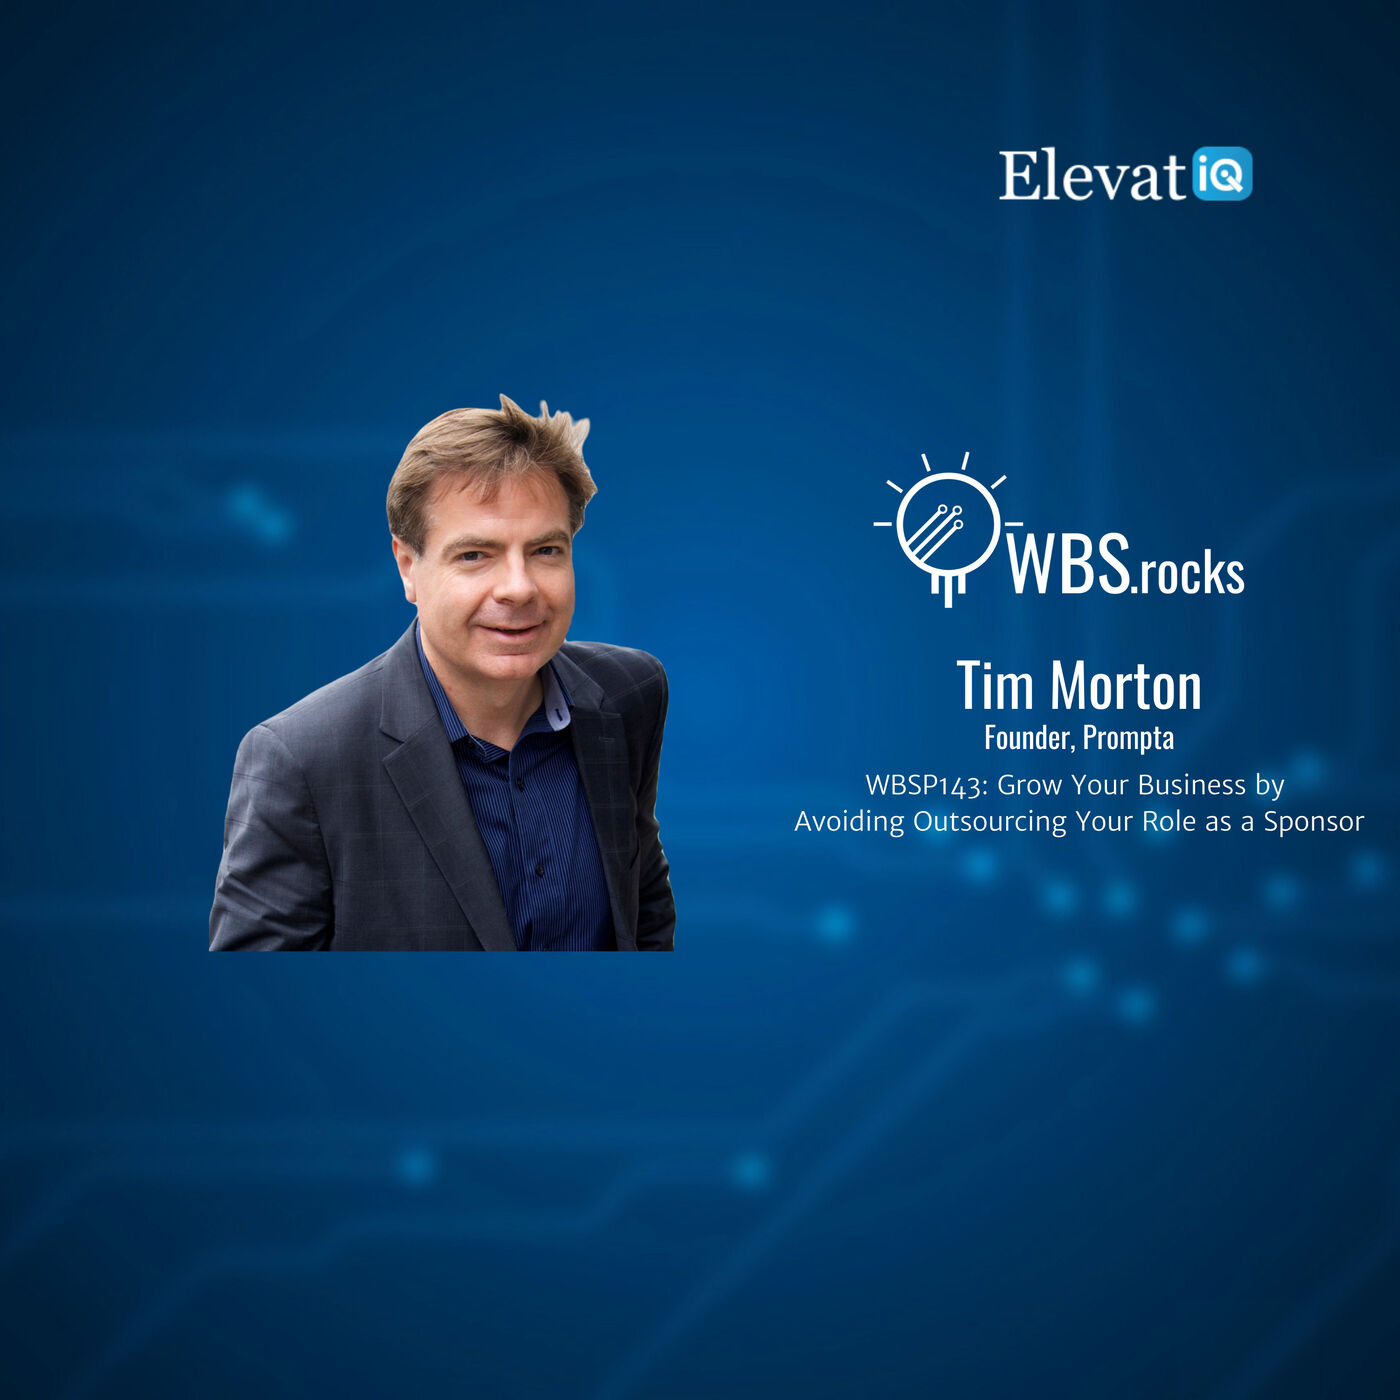 WBSP143: Grow Your Business by Avoiding Outsourcing Your Role as a Sponsor w/ Tim Morton